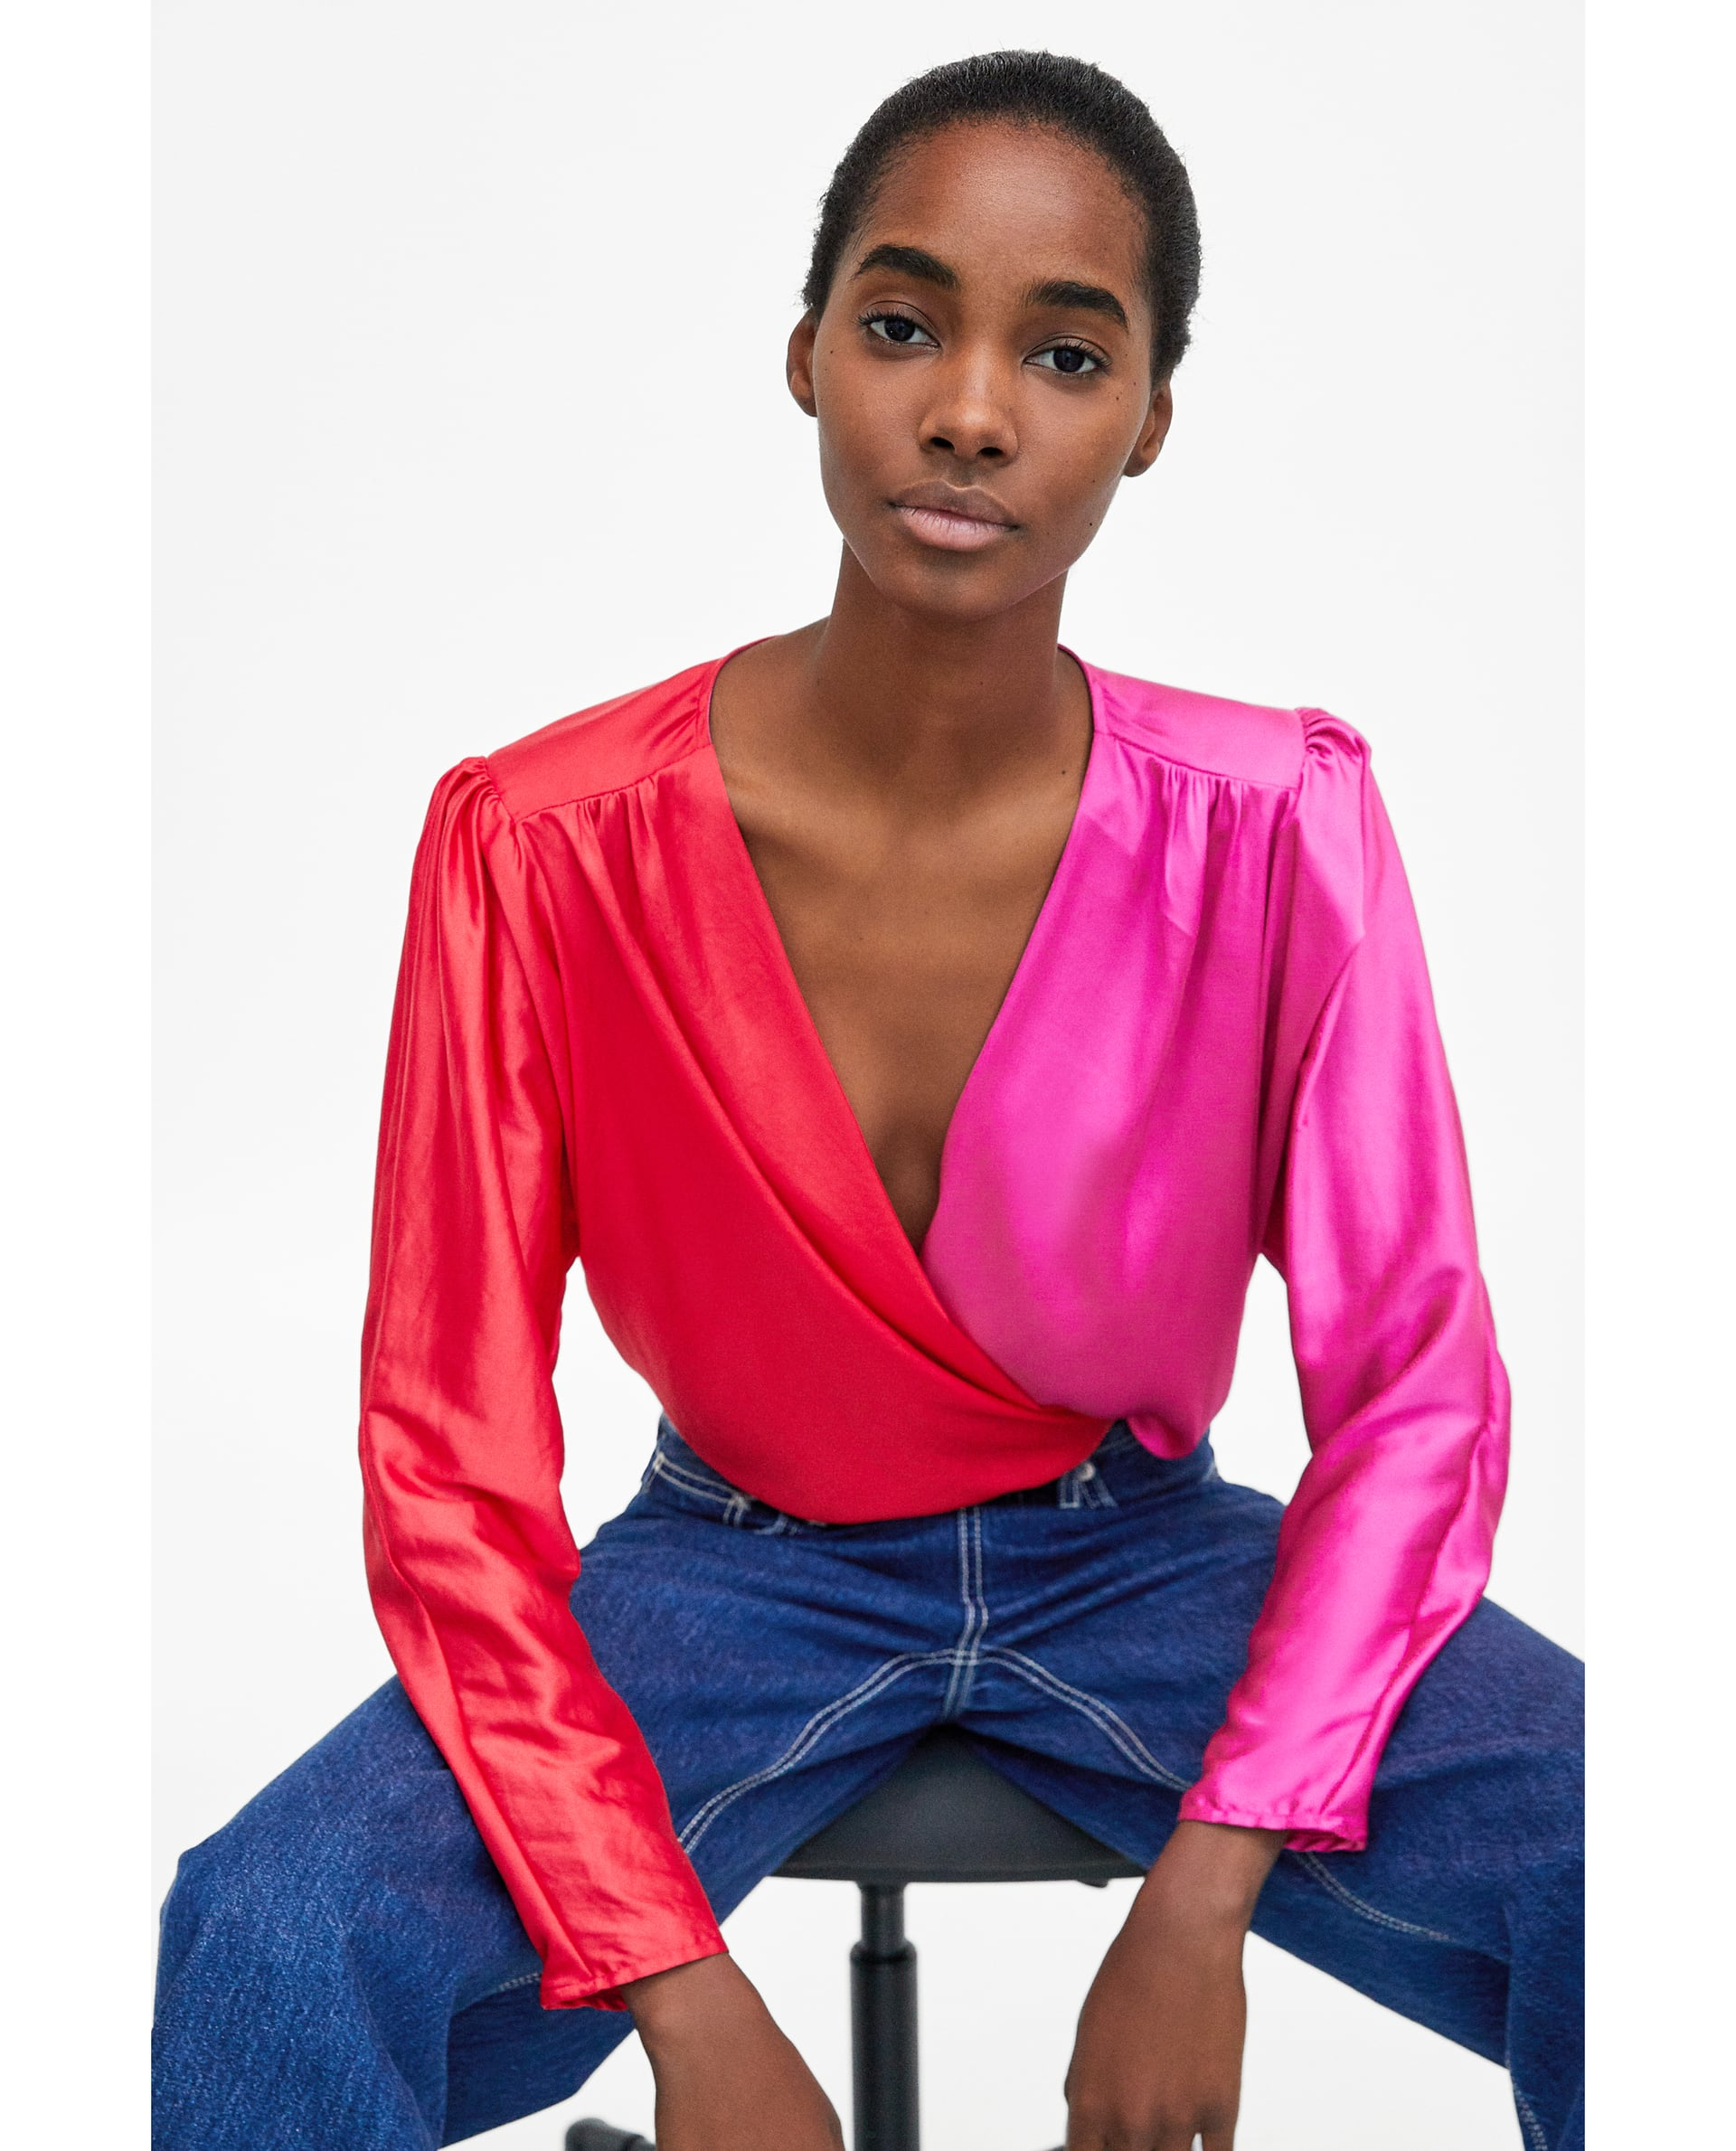 Two Tone Crossover Bodysuit - £29.99, ZaraI know that pink and red isn't for everybody, but ugly chic is basically my whole brand. This bodysuit speaks to me on a spiritual level. I had a similar navy American Apparel one back at university and this feels a lot more like the grown up girl version. I've been seeing it this clashing colour combo a lot on SS18 runways - Lanvin and Emilia Wickstead were big favourites.